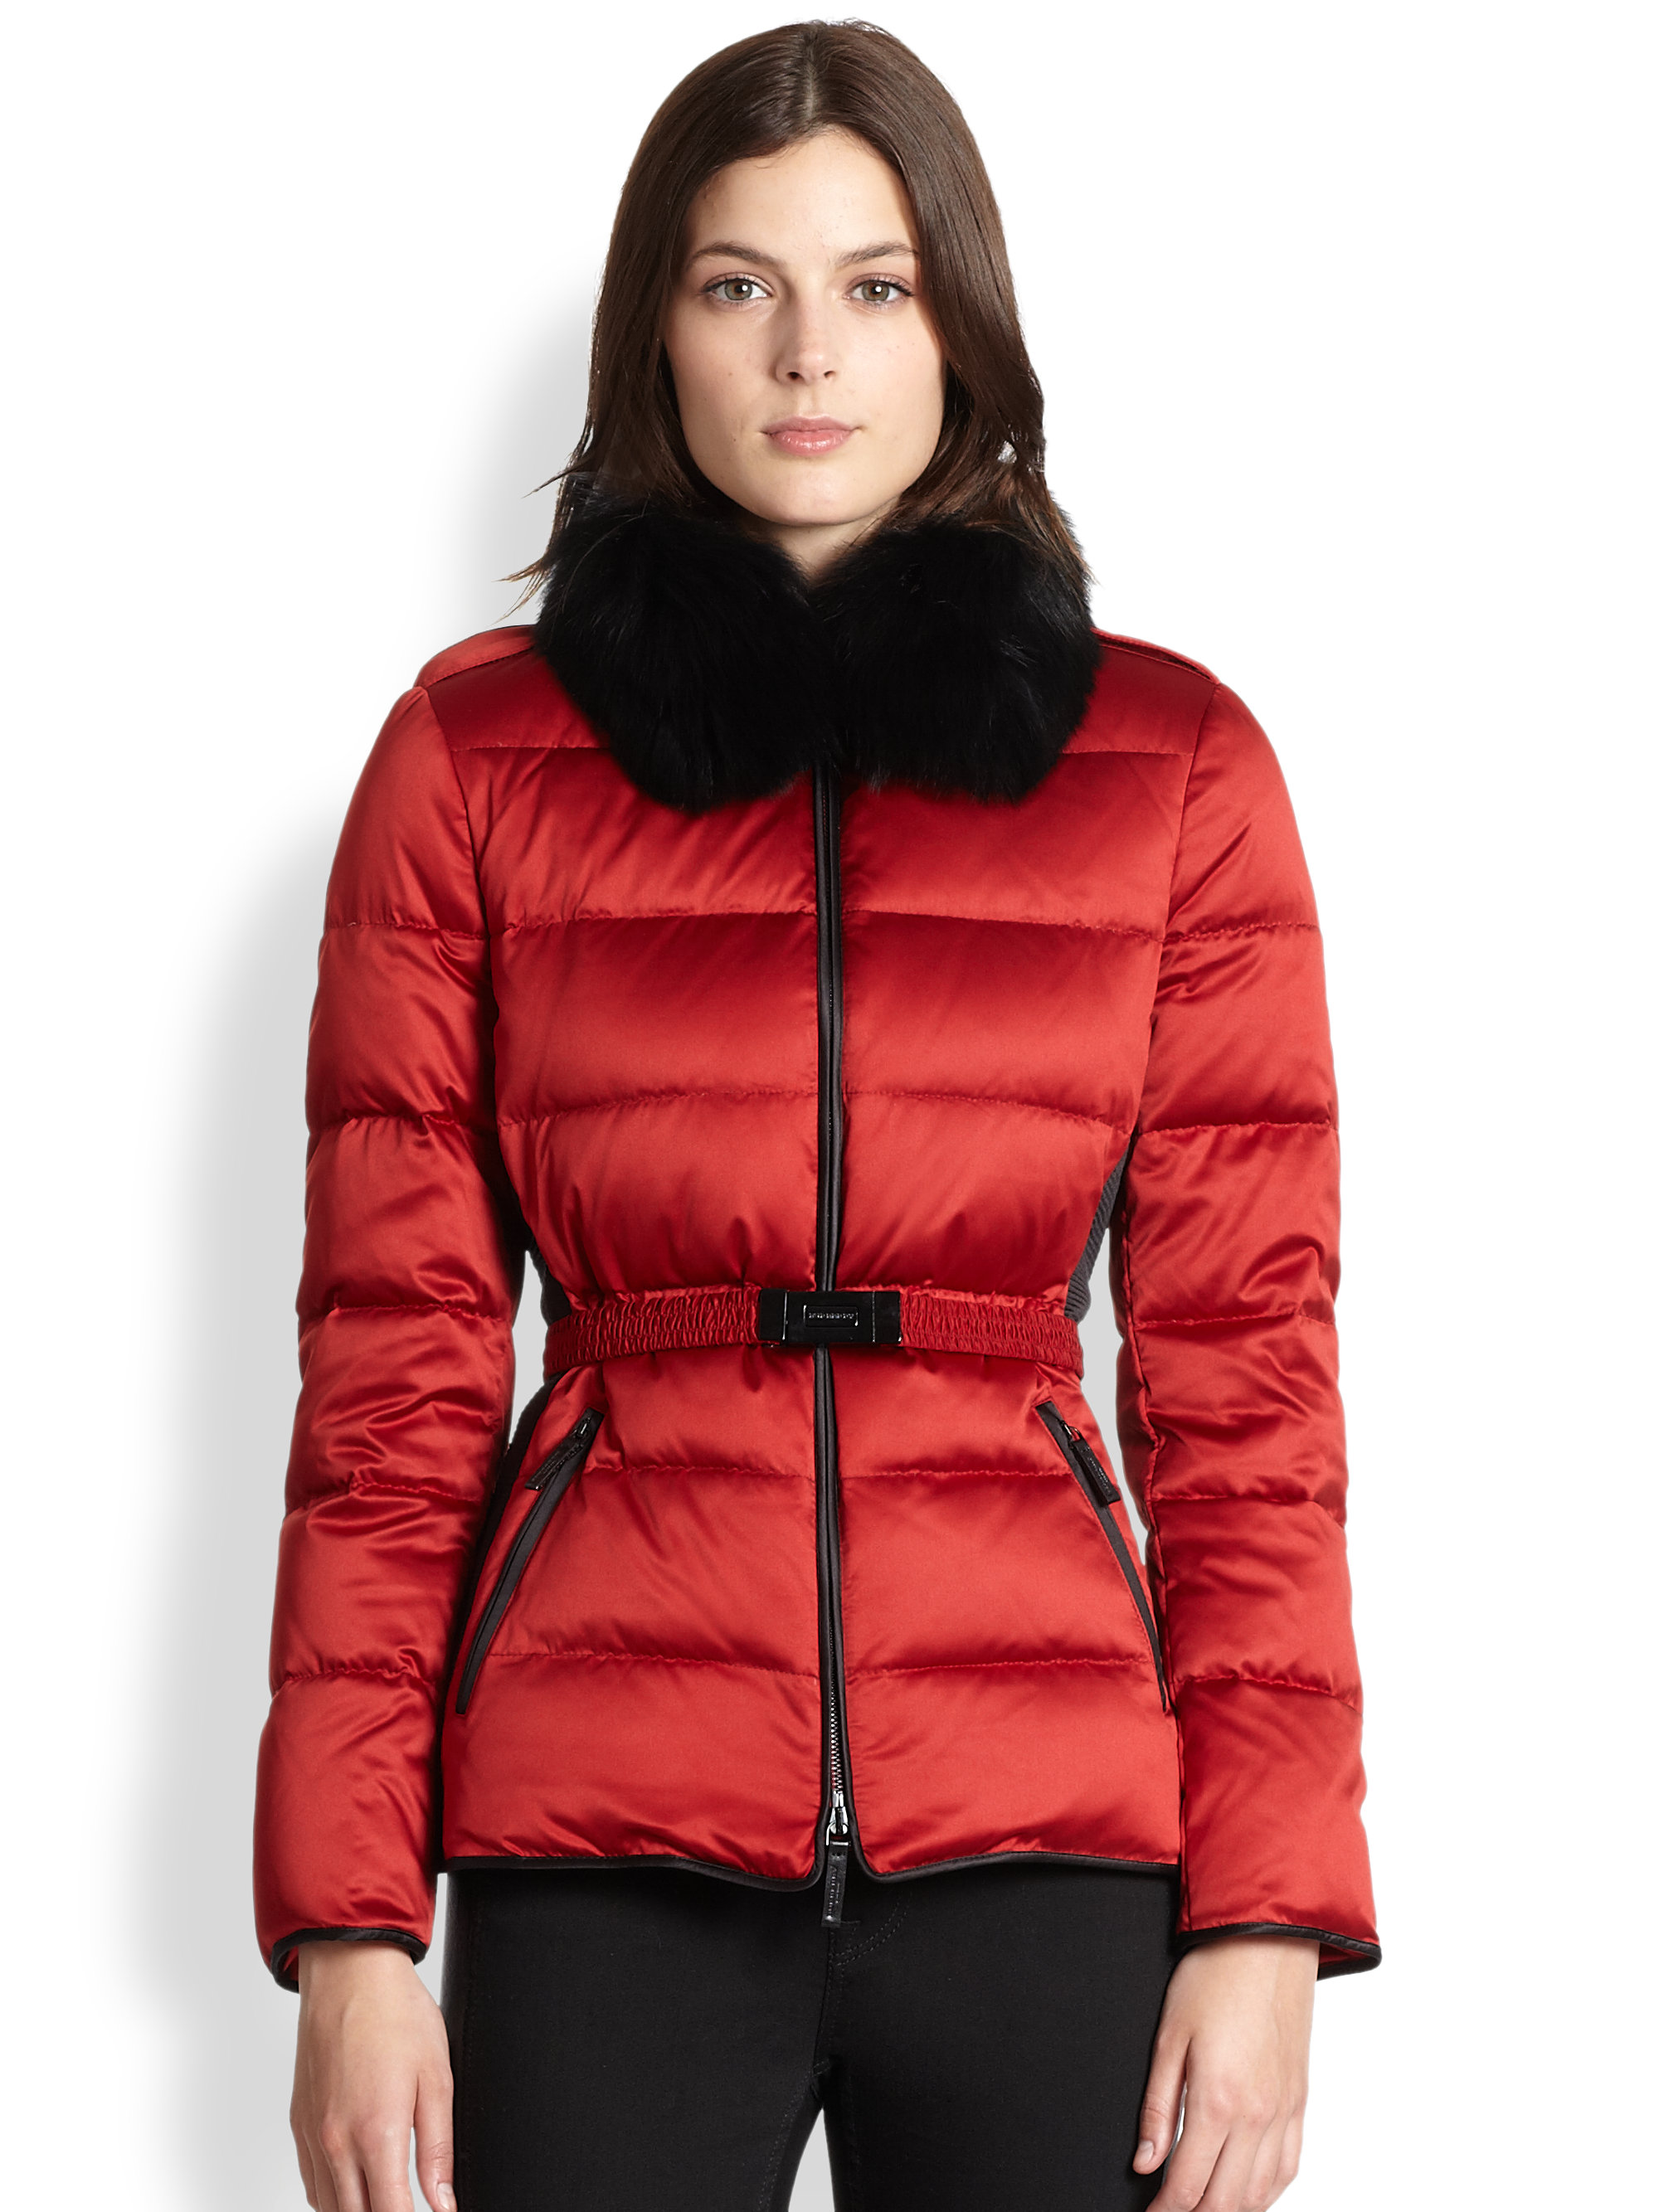 Burberry Furtrimmed Puffer Jacket In Red Damson Red Lyst